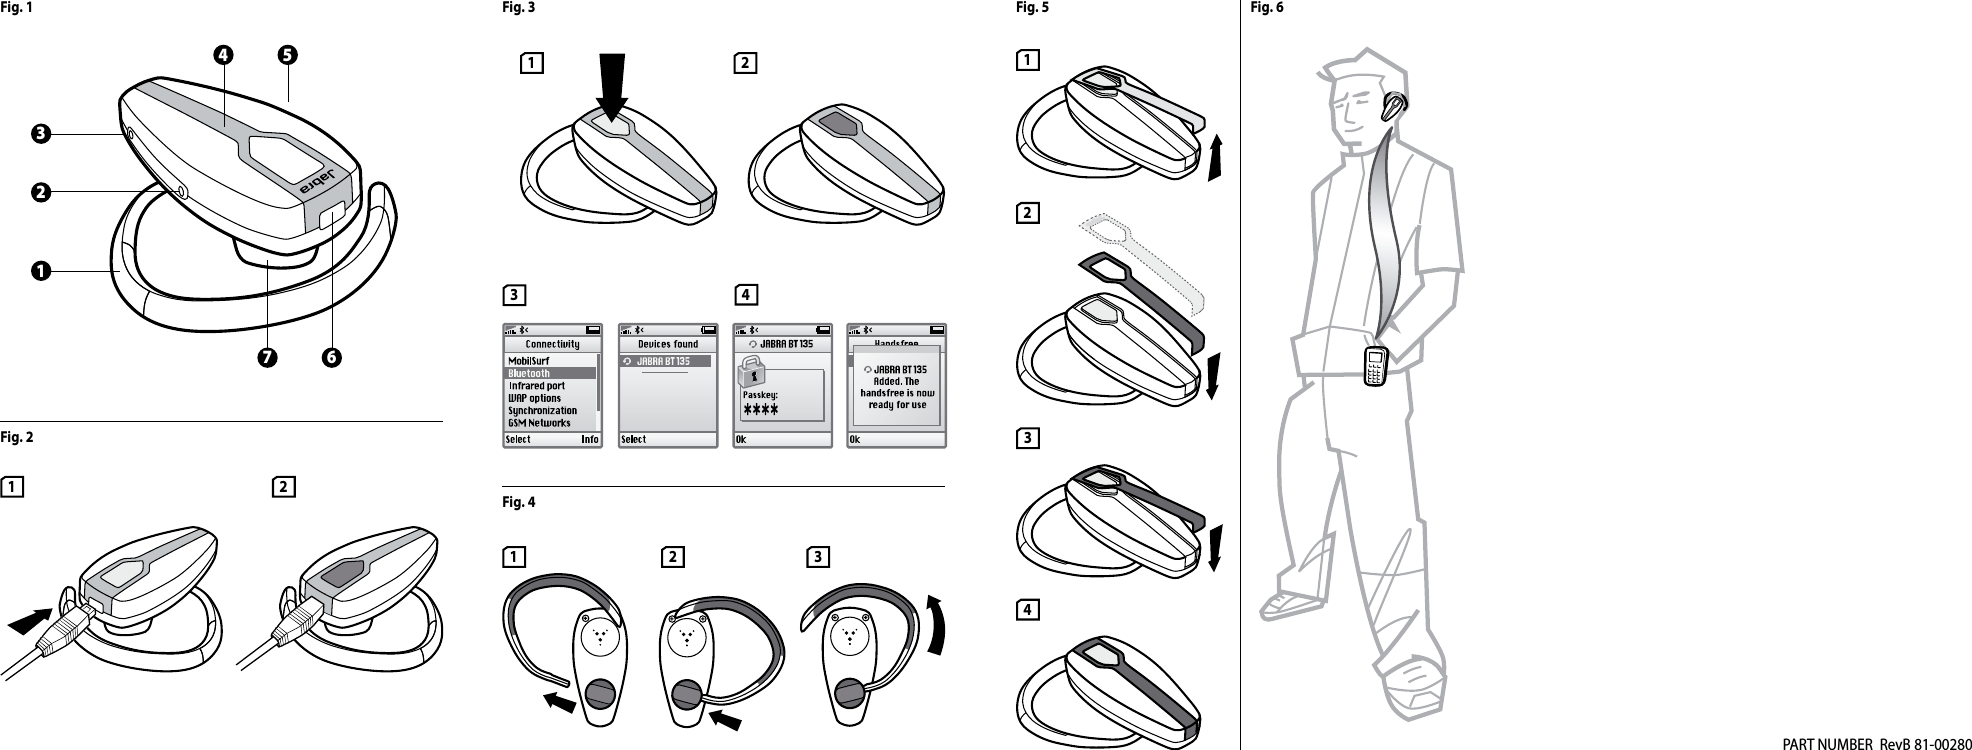 GN Netcom BT135 Jabra BT135 Bluetooth Headset User Manual